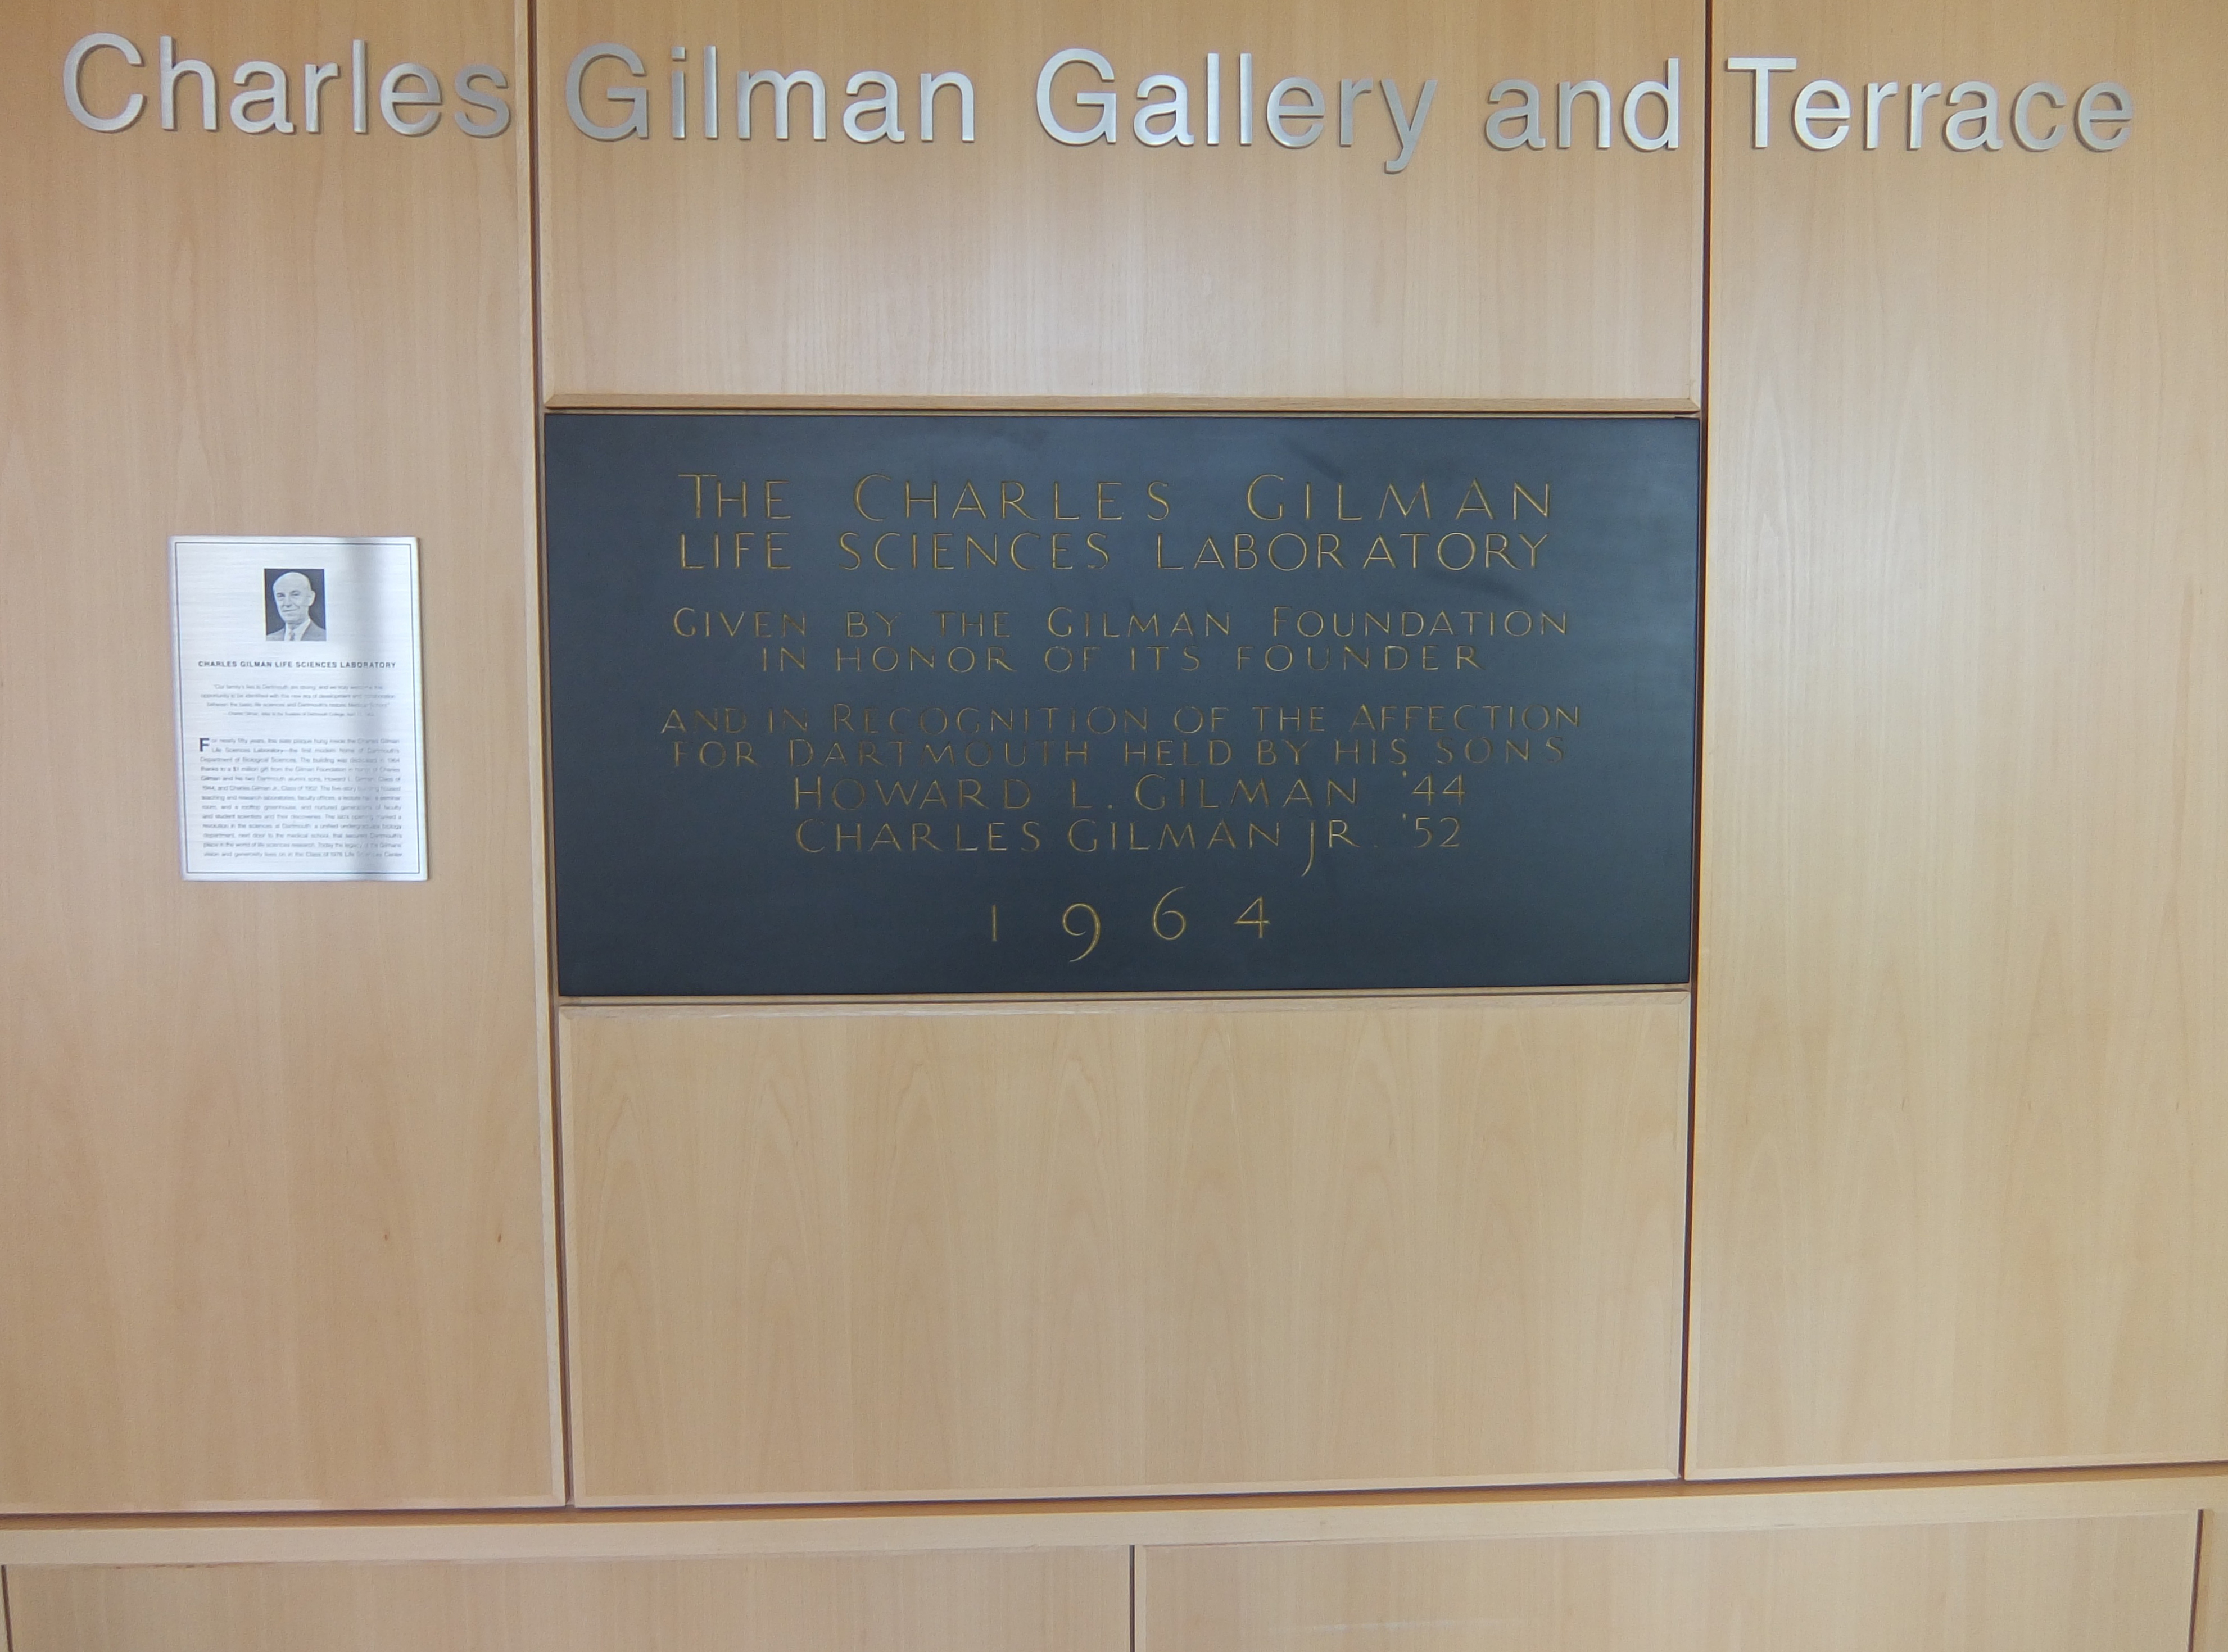 Gilman plaque, Meacham photo